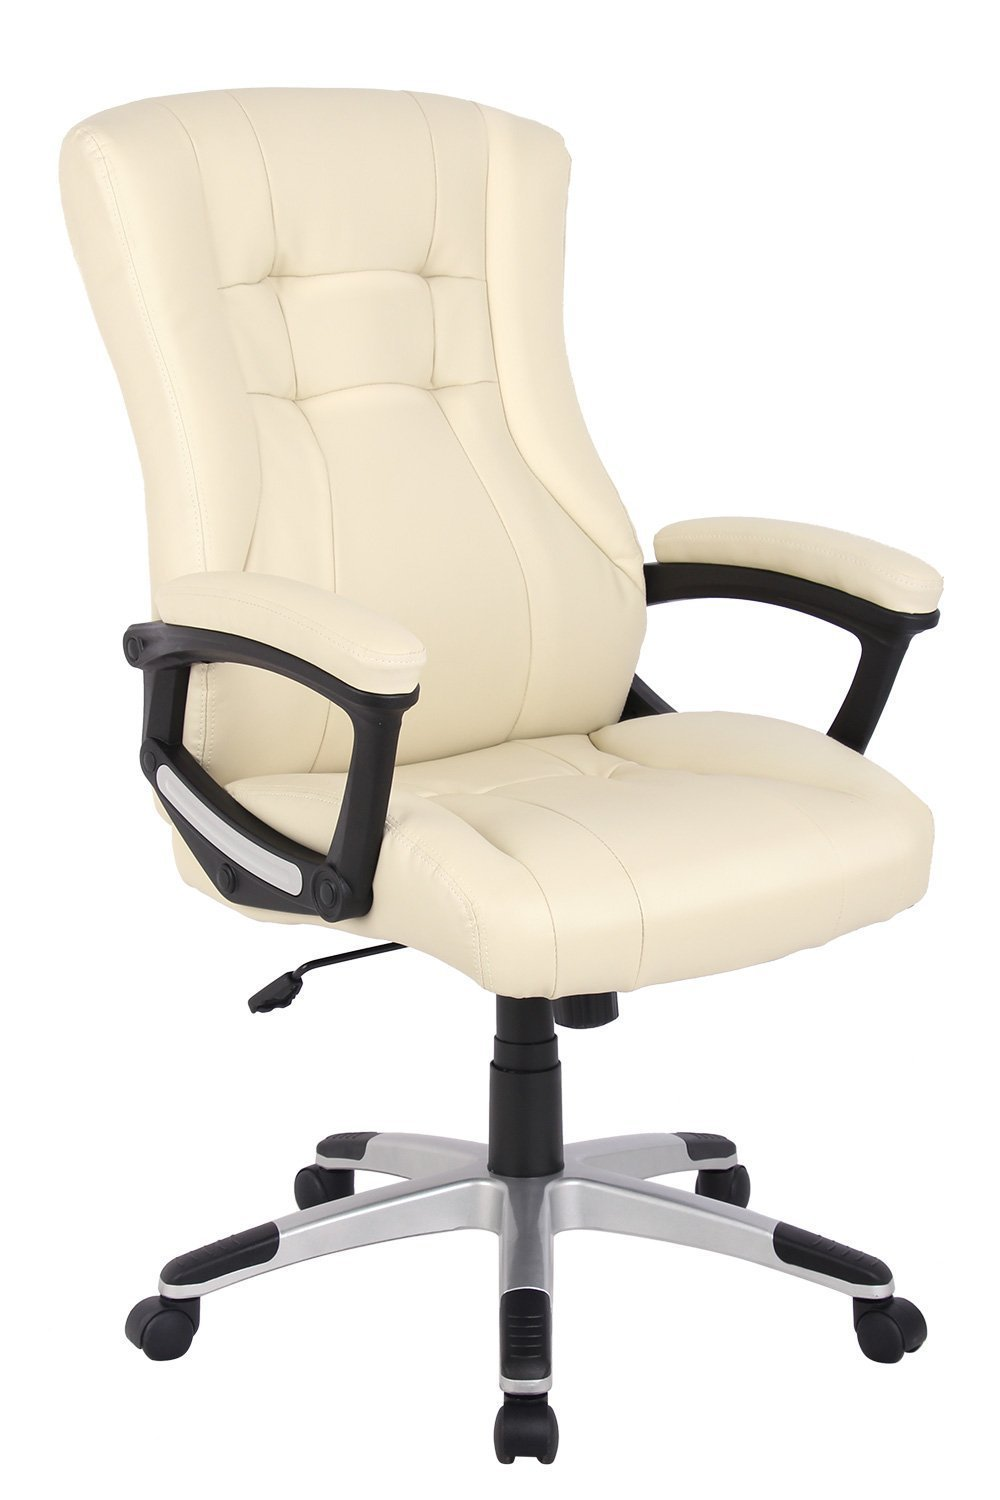 High Back Office Executive Ergonomic Chair Home